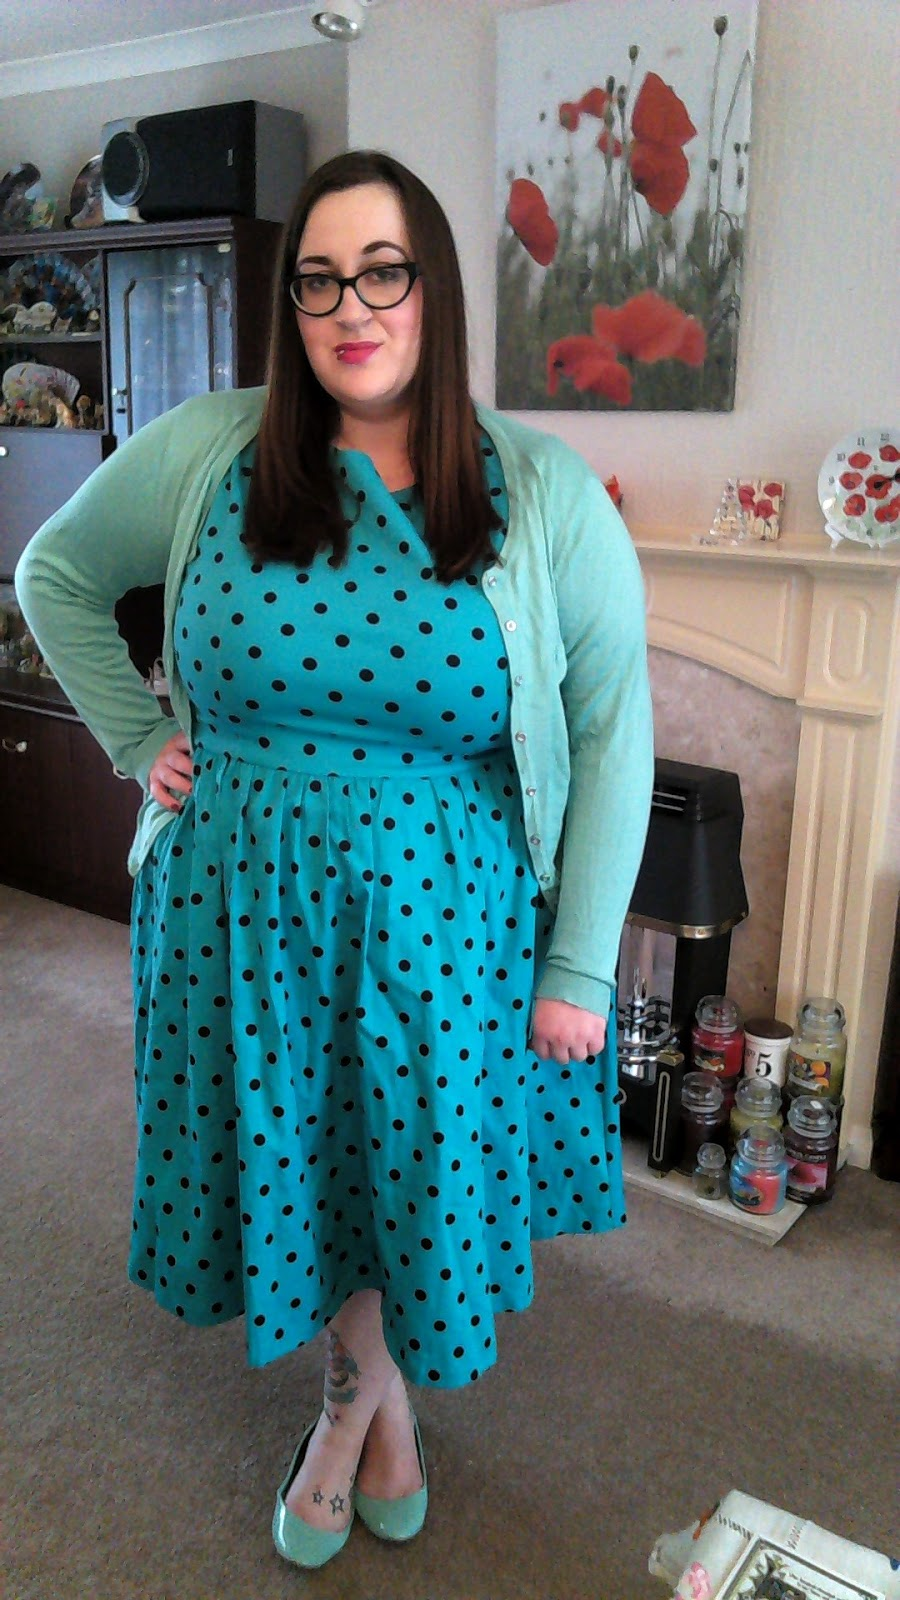 Fat plus size bbw girl (size 20/22) wearing a lindy bop turquoise Audrey dress